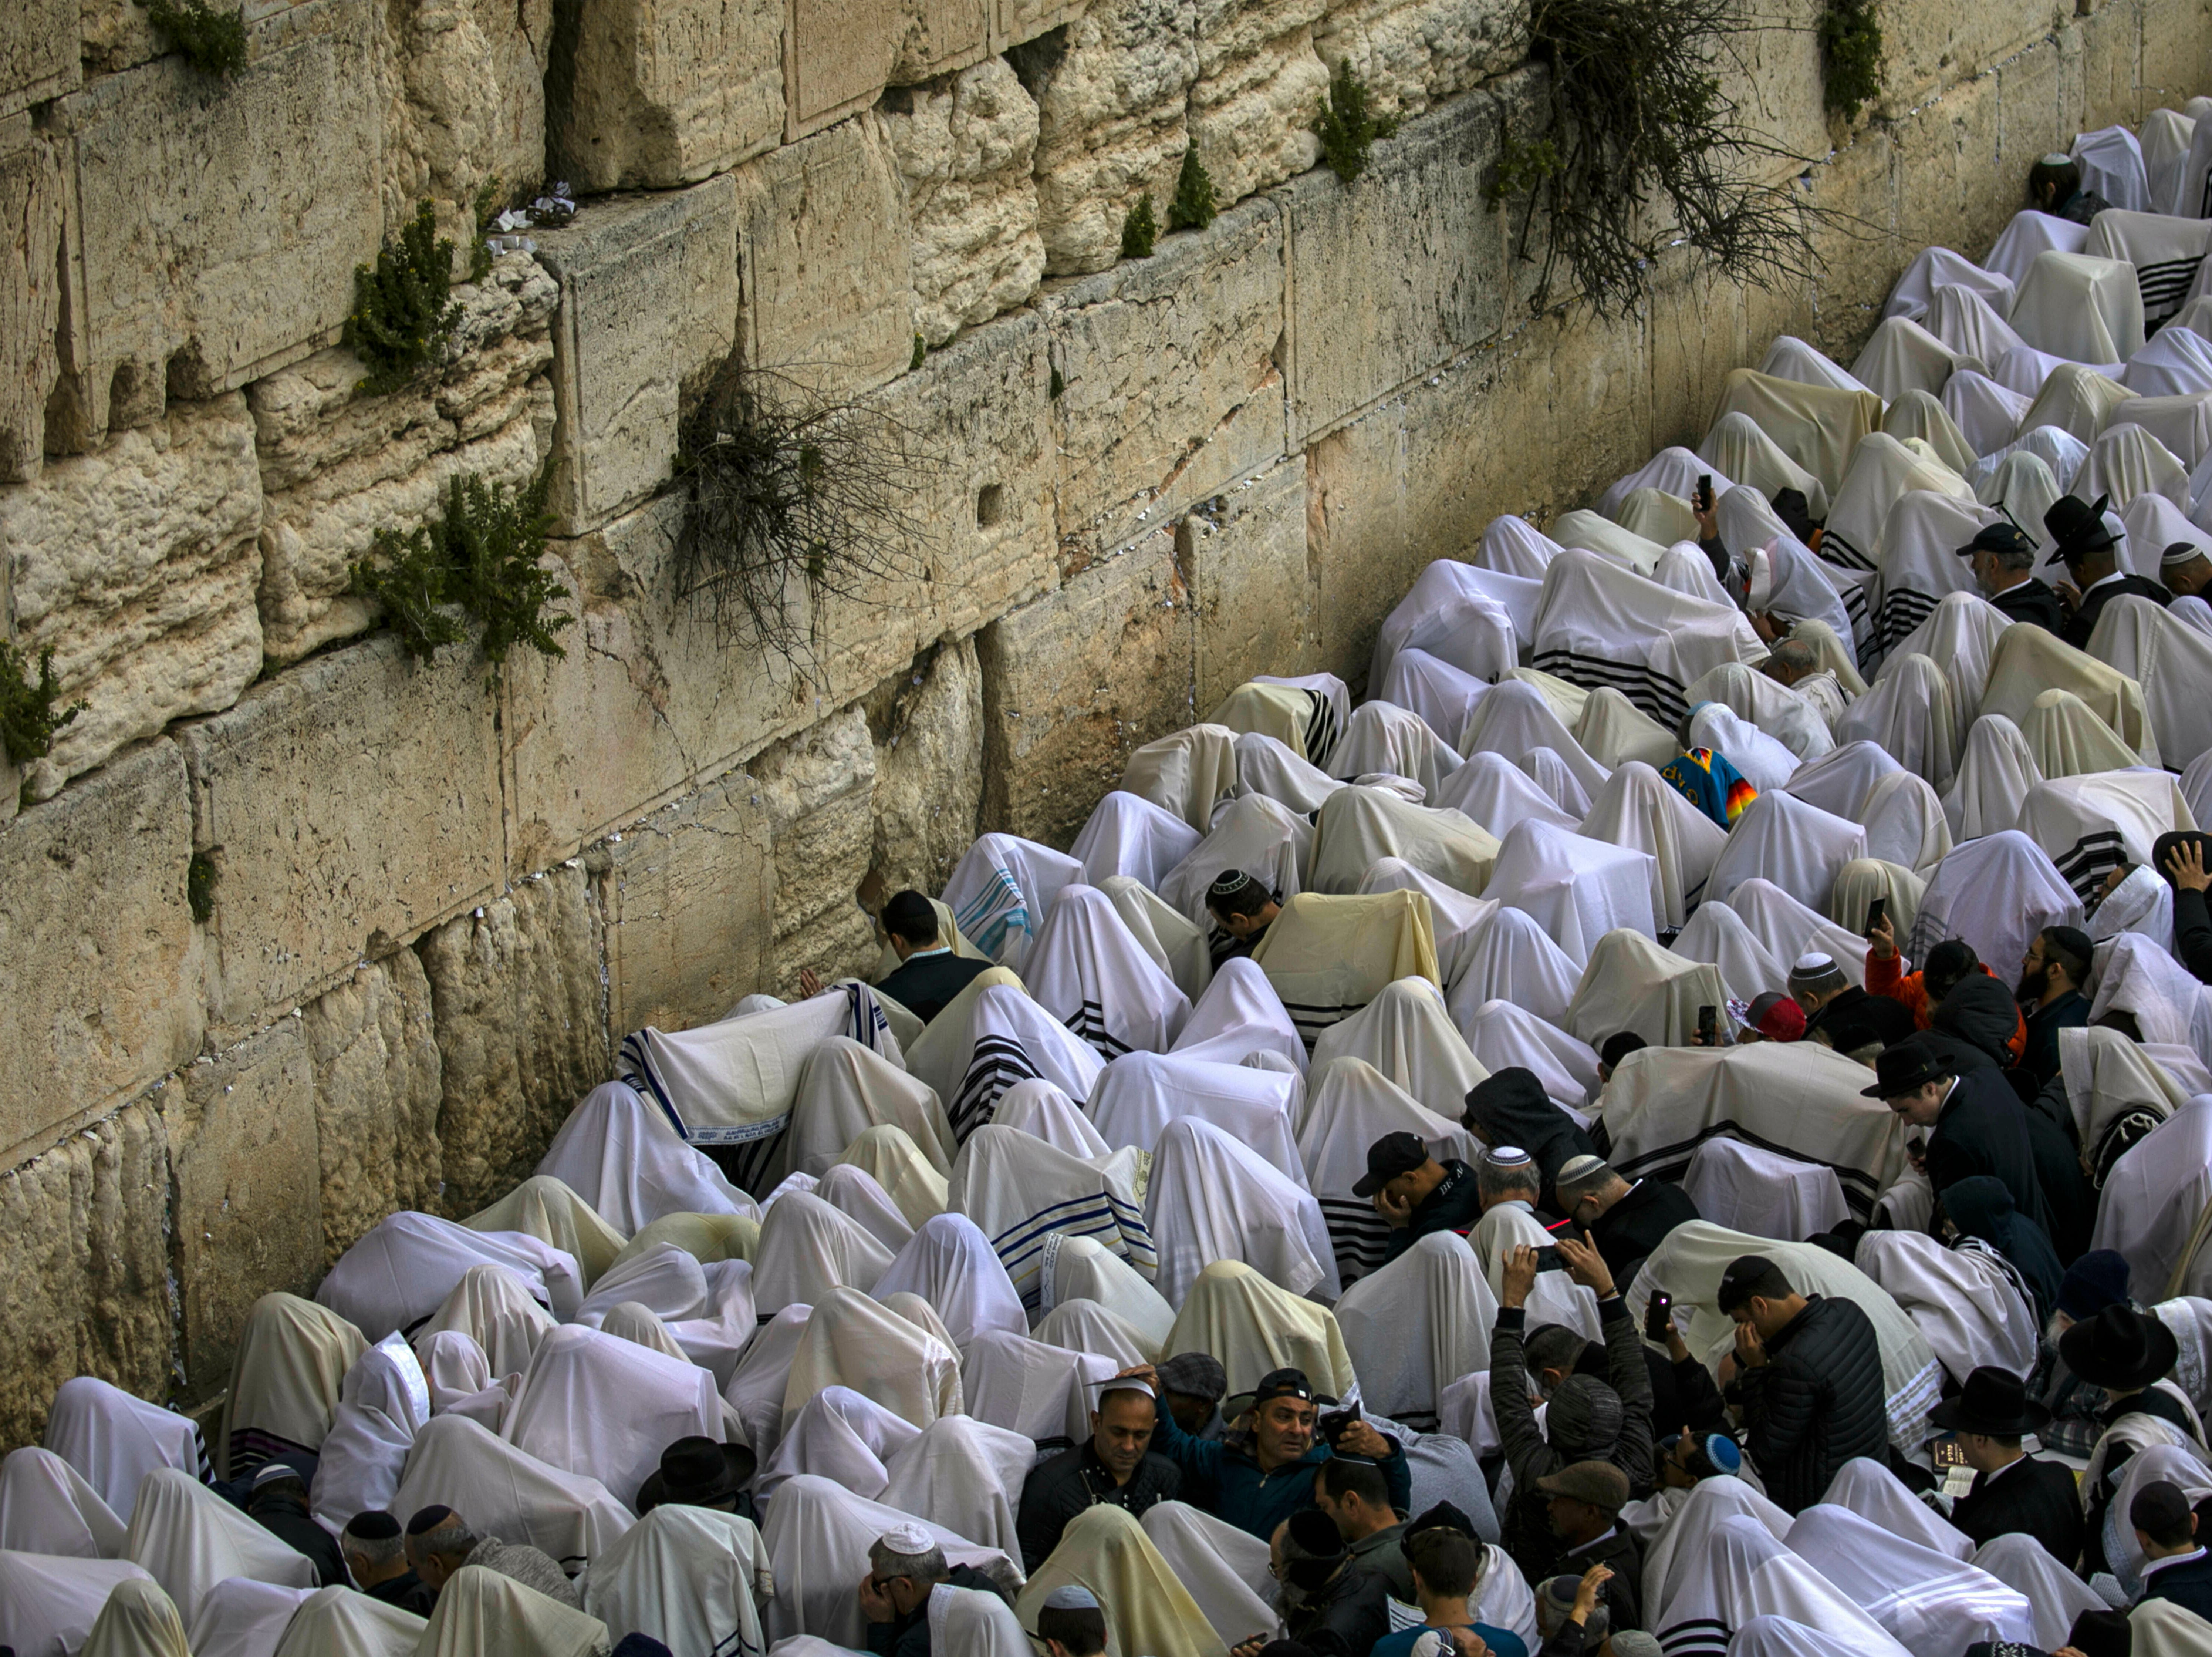 Covered in prayer shawls ultra-orthodox Jewish men of the Cohanim priestly caste participate in a blessing during the Jewish holiday of Passover, at the Western Wall, the holiest site where Jews can pray in Jerusalem's old city, Monday, April 22, 2019.